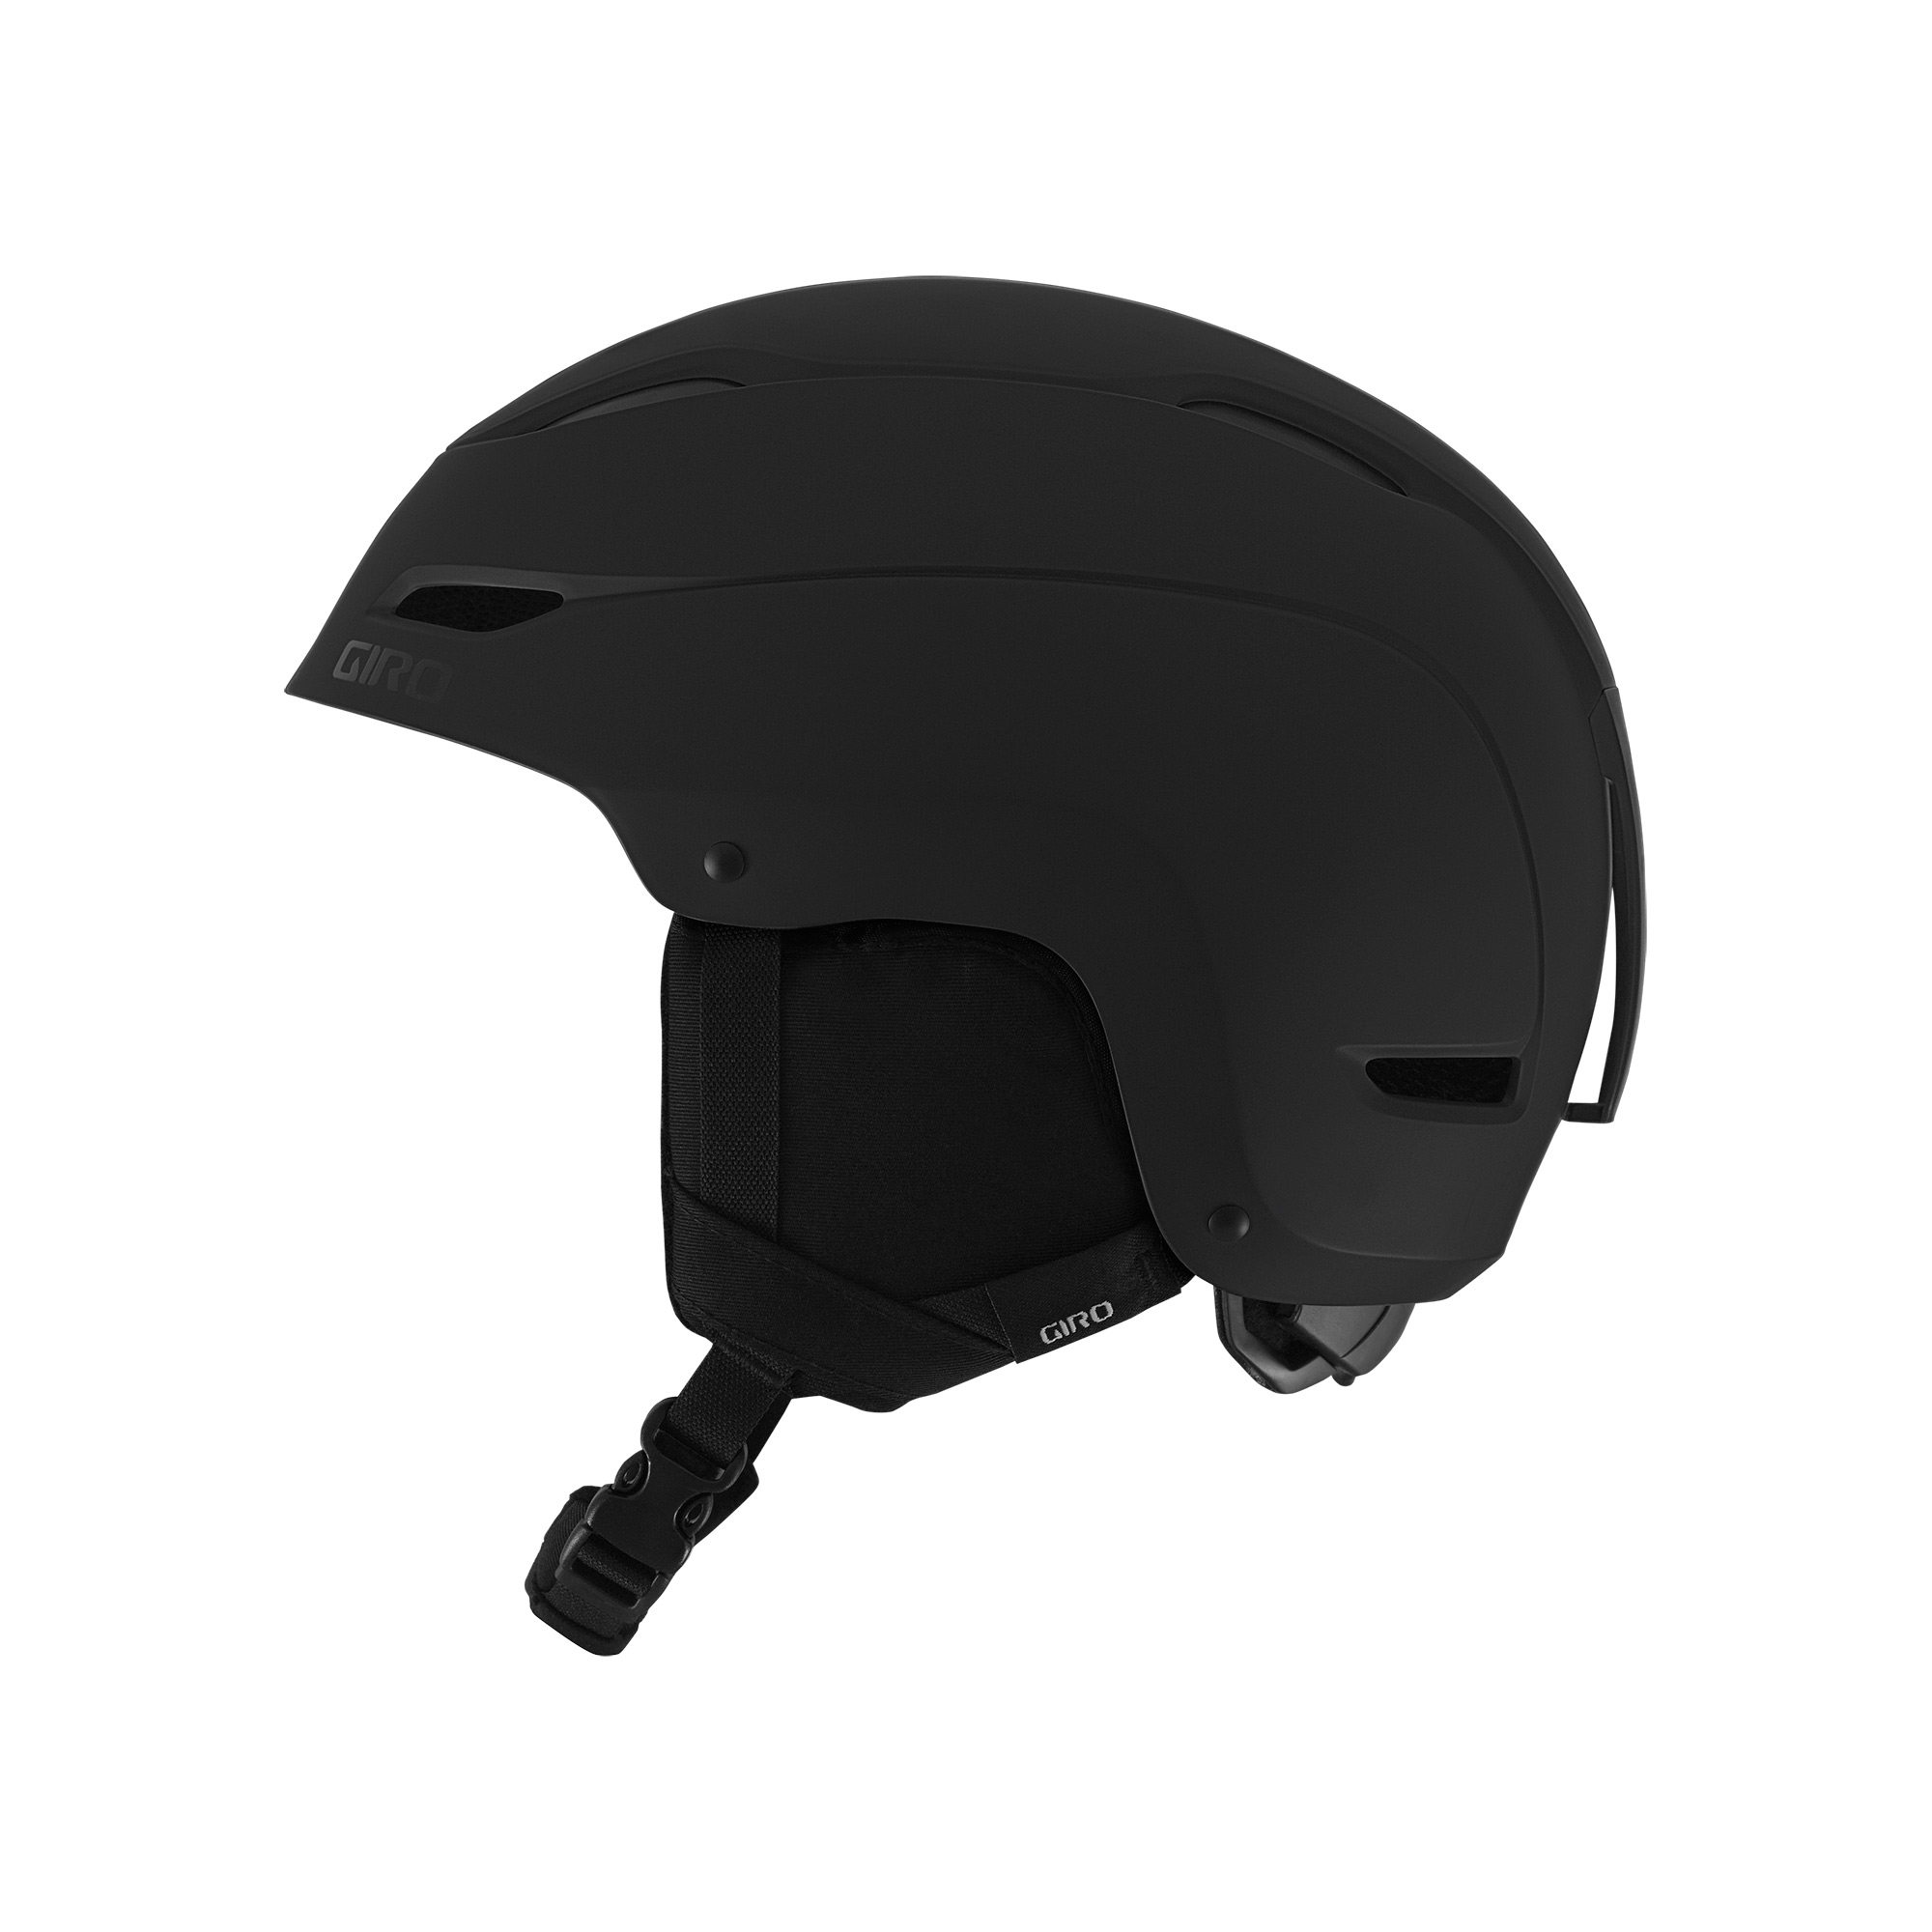 2017-18 Giro Ratio Ski Helmet Matte Black